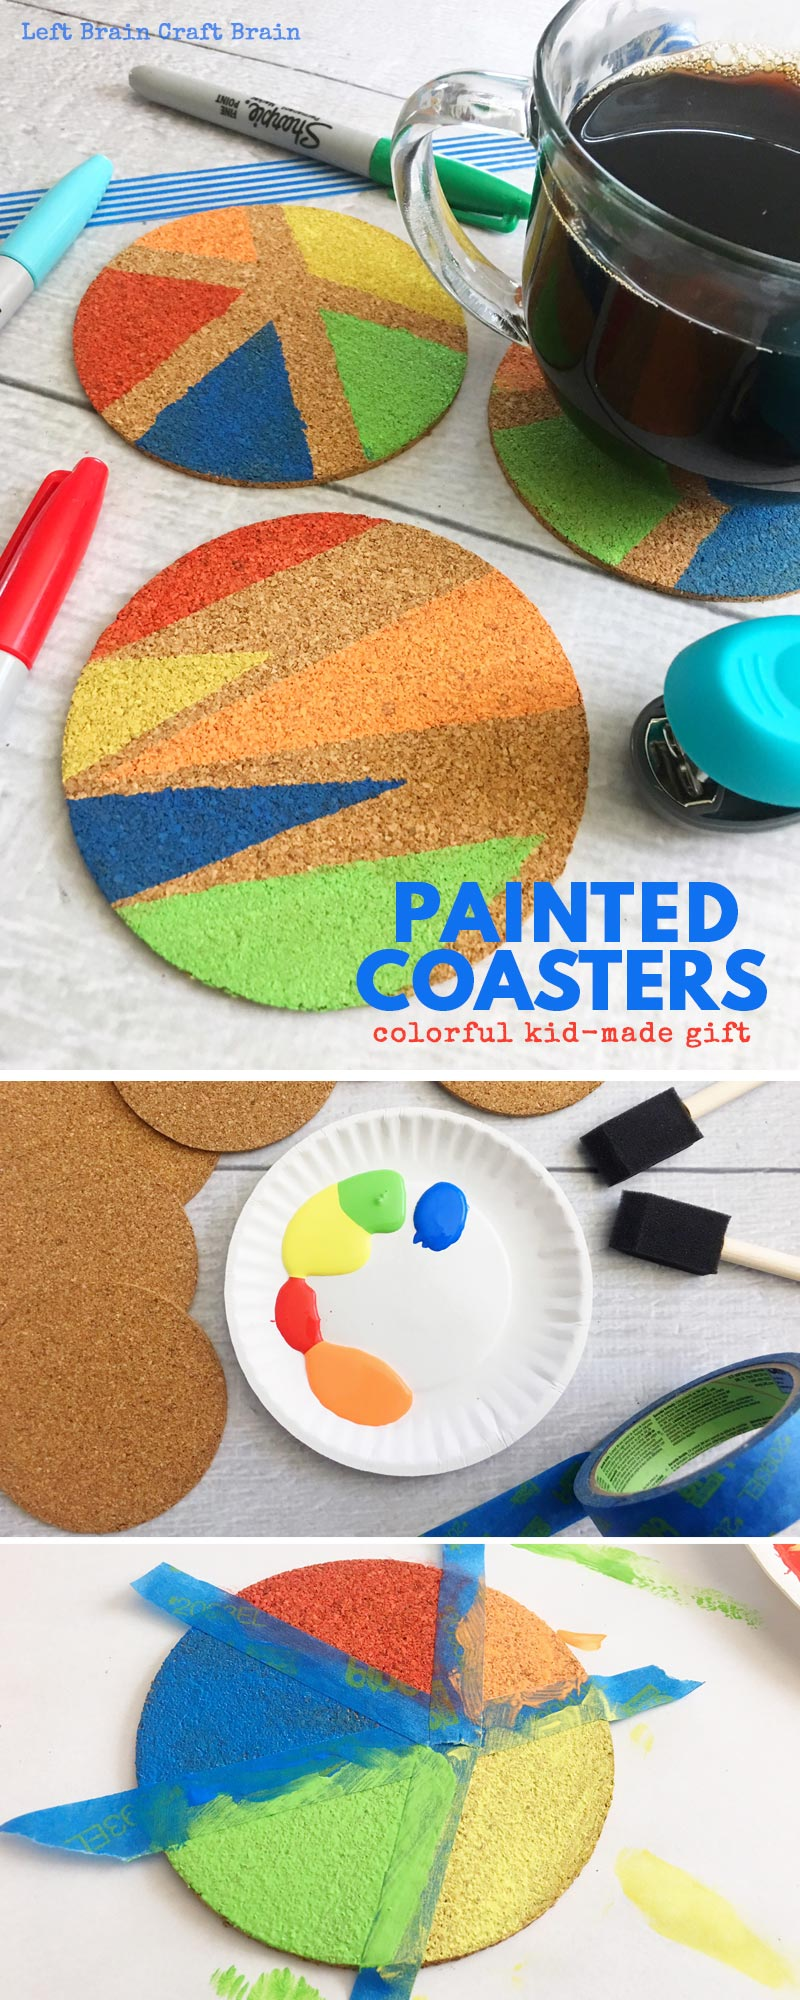 Create these beautiful DIY painted coasters for your Mother's Day gift or Father's Day gift! It's a math art activity for your creative kids that like creating homemade gifts.